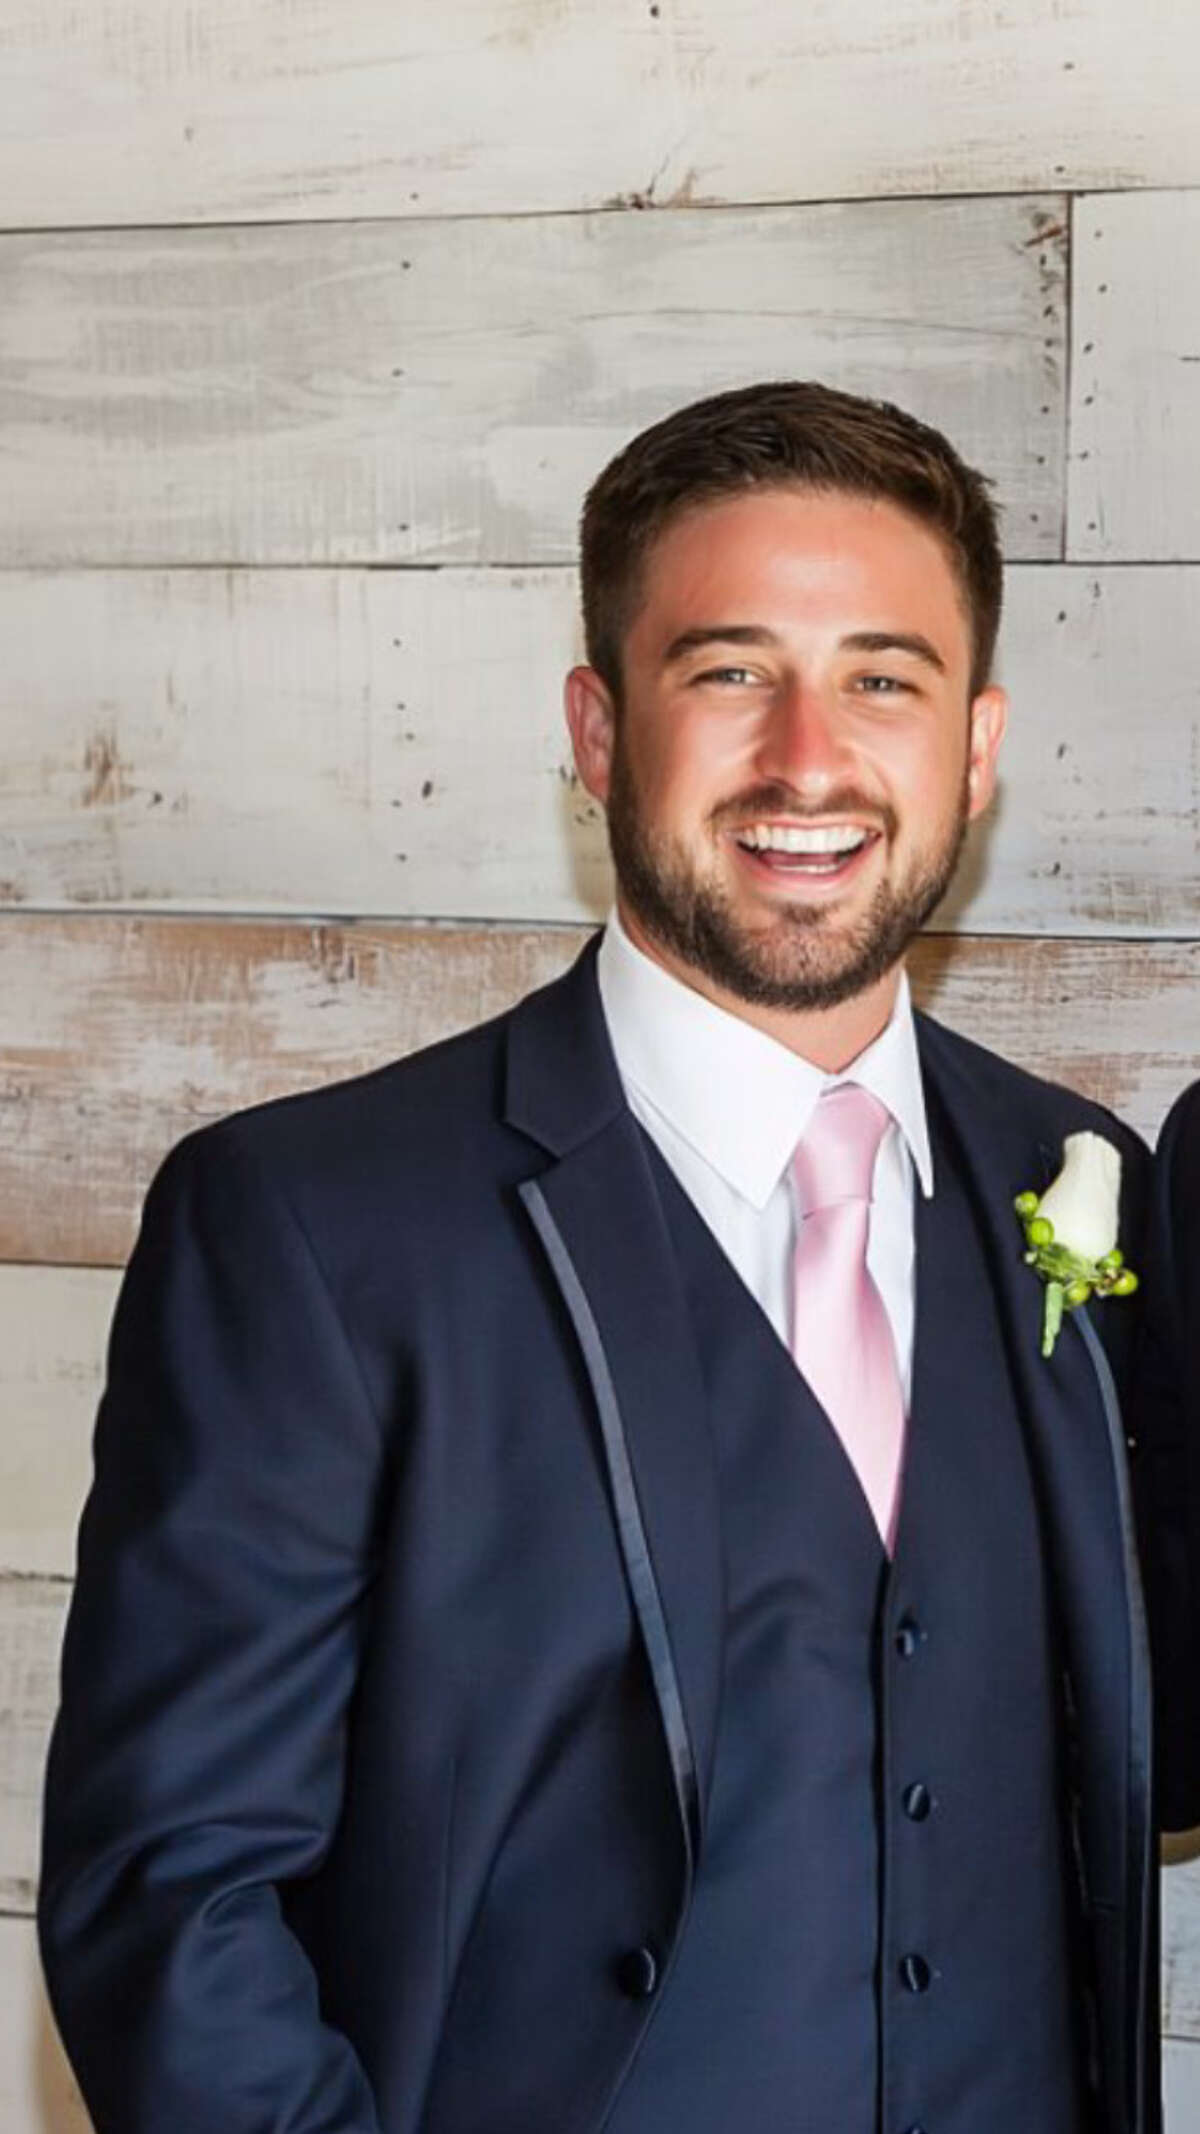 Collin Campbell at a 2016 family wedding.